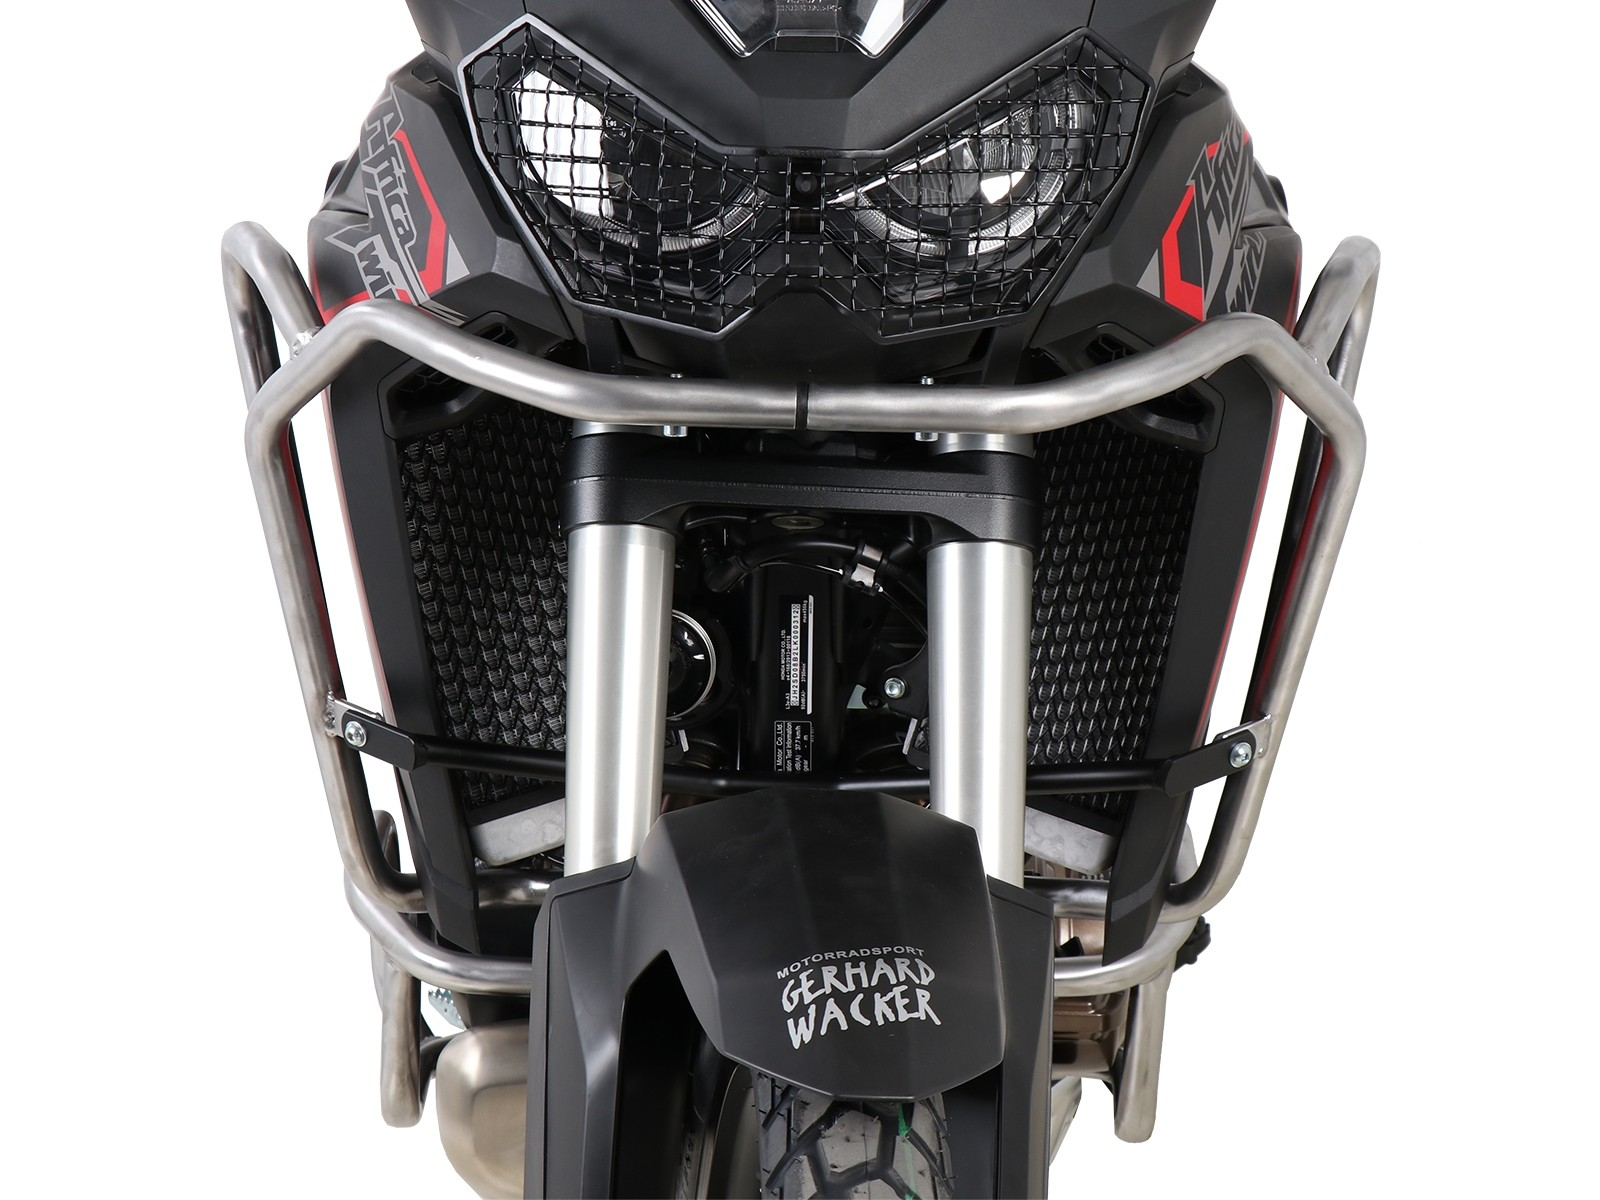 Hepco Upper Engine/Tank Protection Honda CRF 1100 L Africa Twin 2019-  STAINLESS STEEL